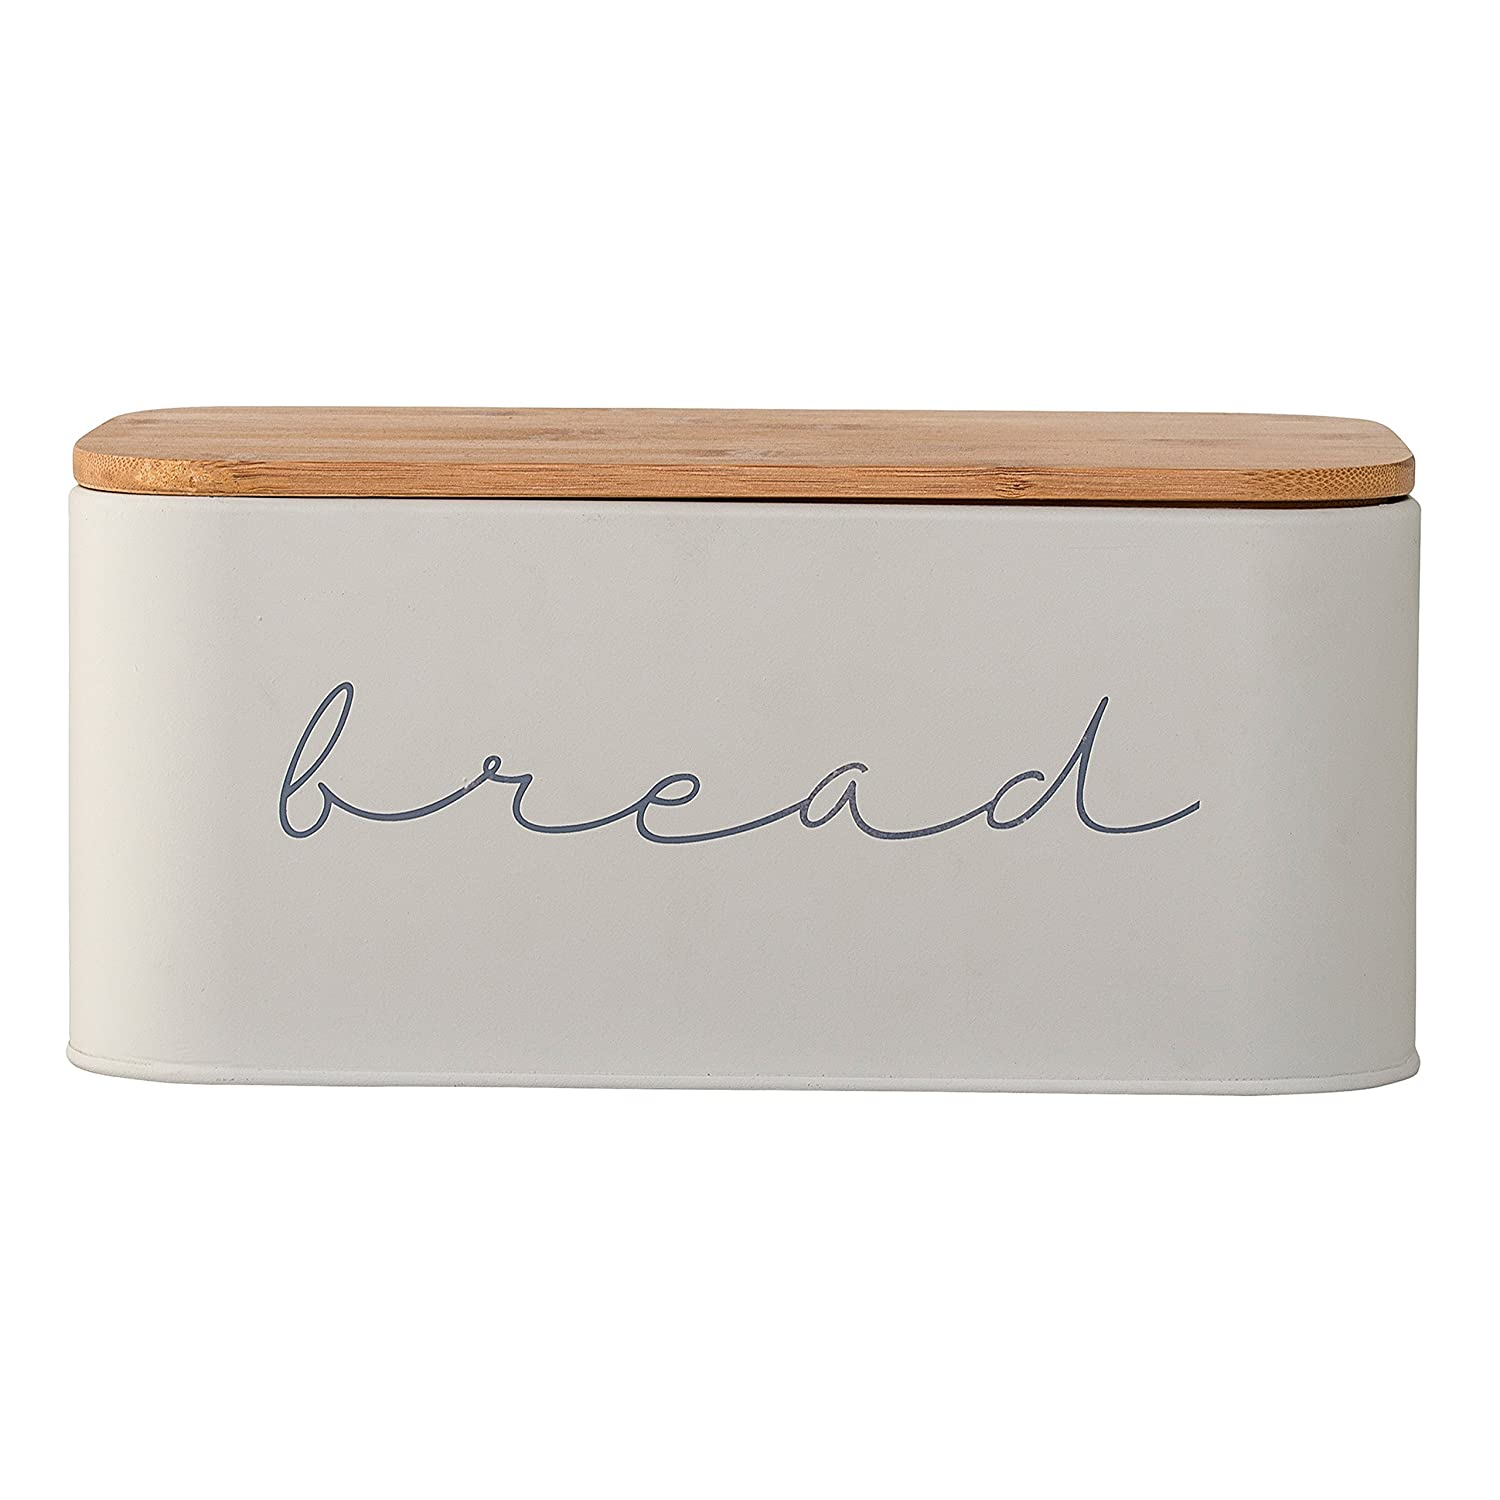 Bloomingville A97306650 MetalBread Bin with Bamboo Lid